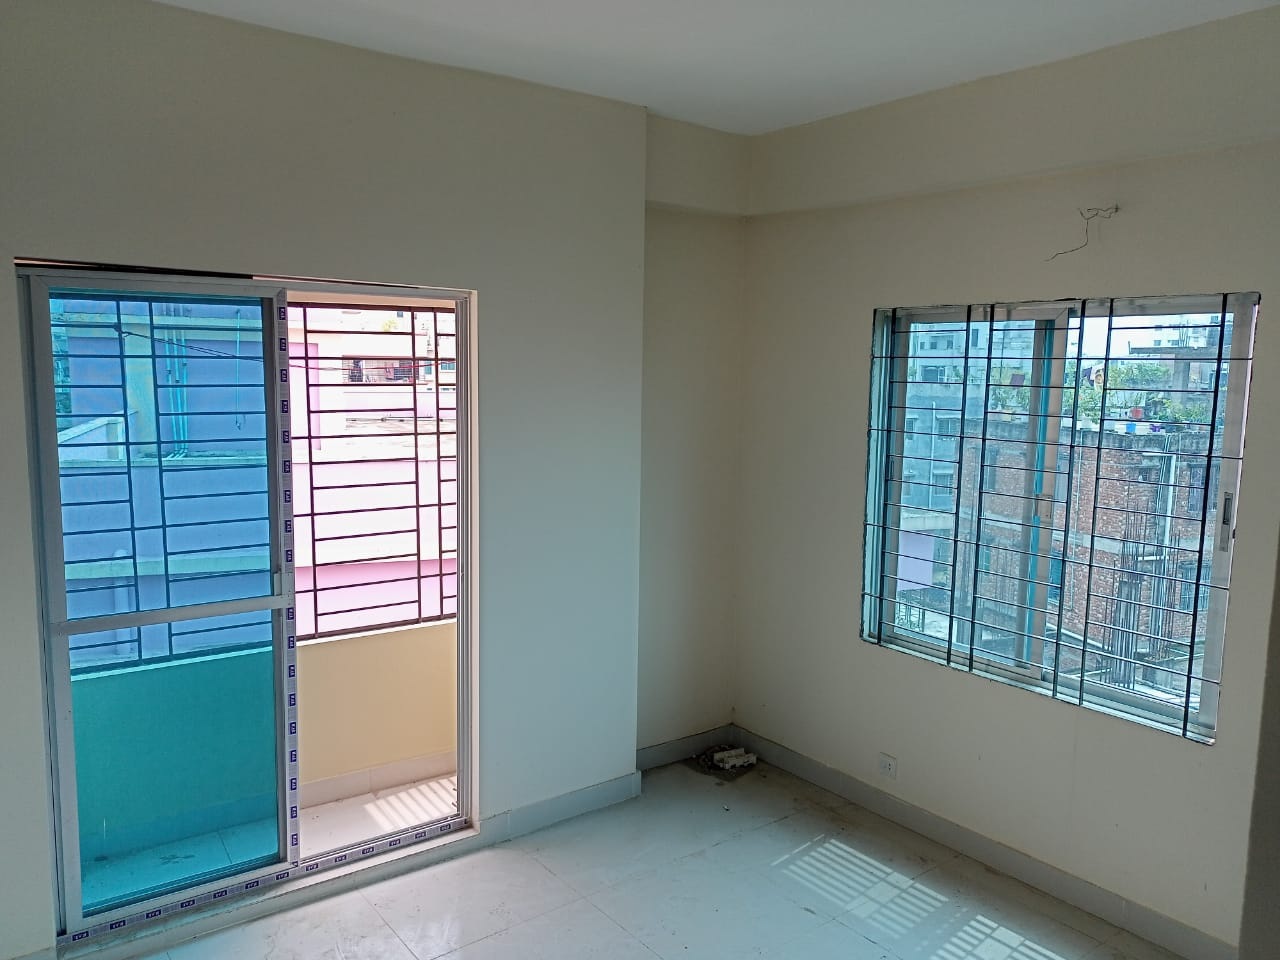 1060-sft-apartment-for-sale-at-jafrabad-dhanmondi-6th-floor-928709